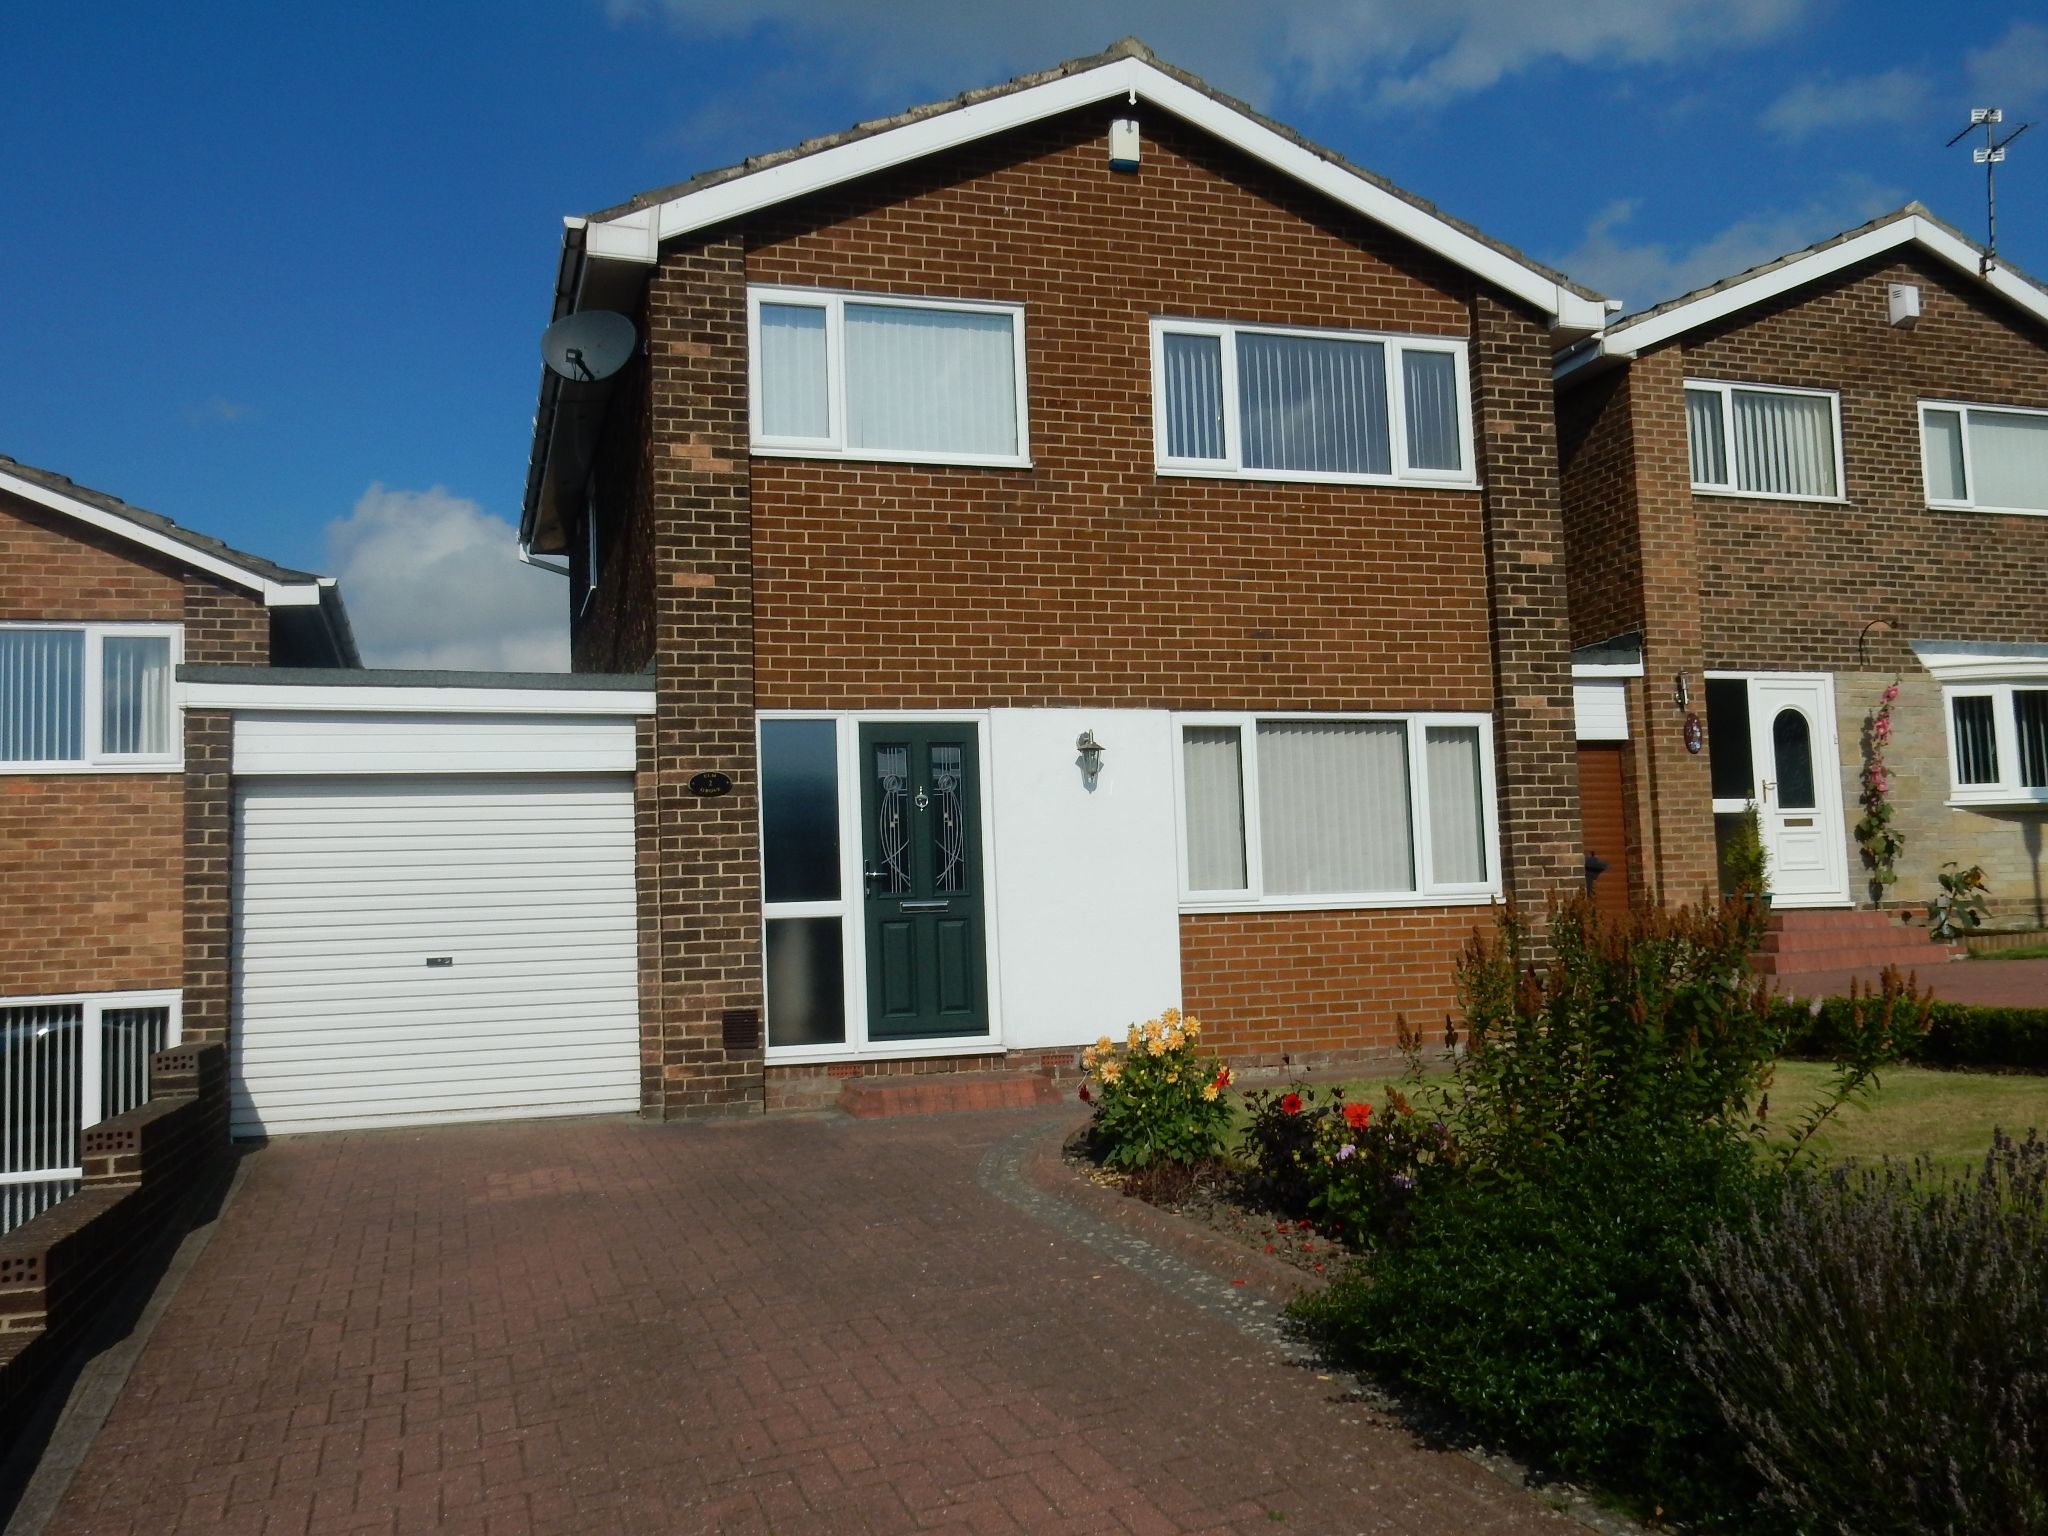 3 bedroom detached house For Sale in Durham - Photograph 12.